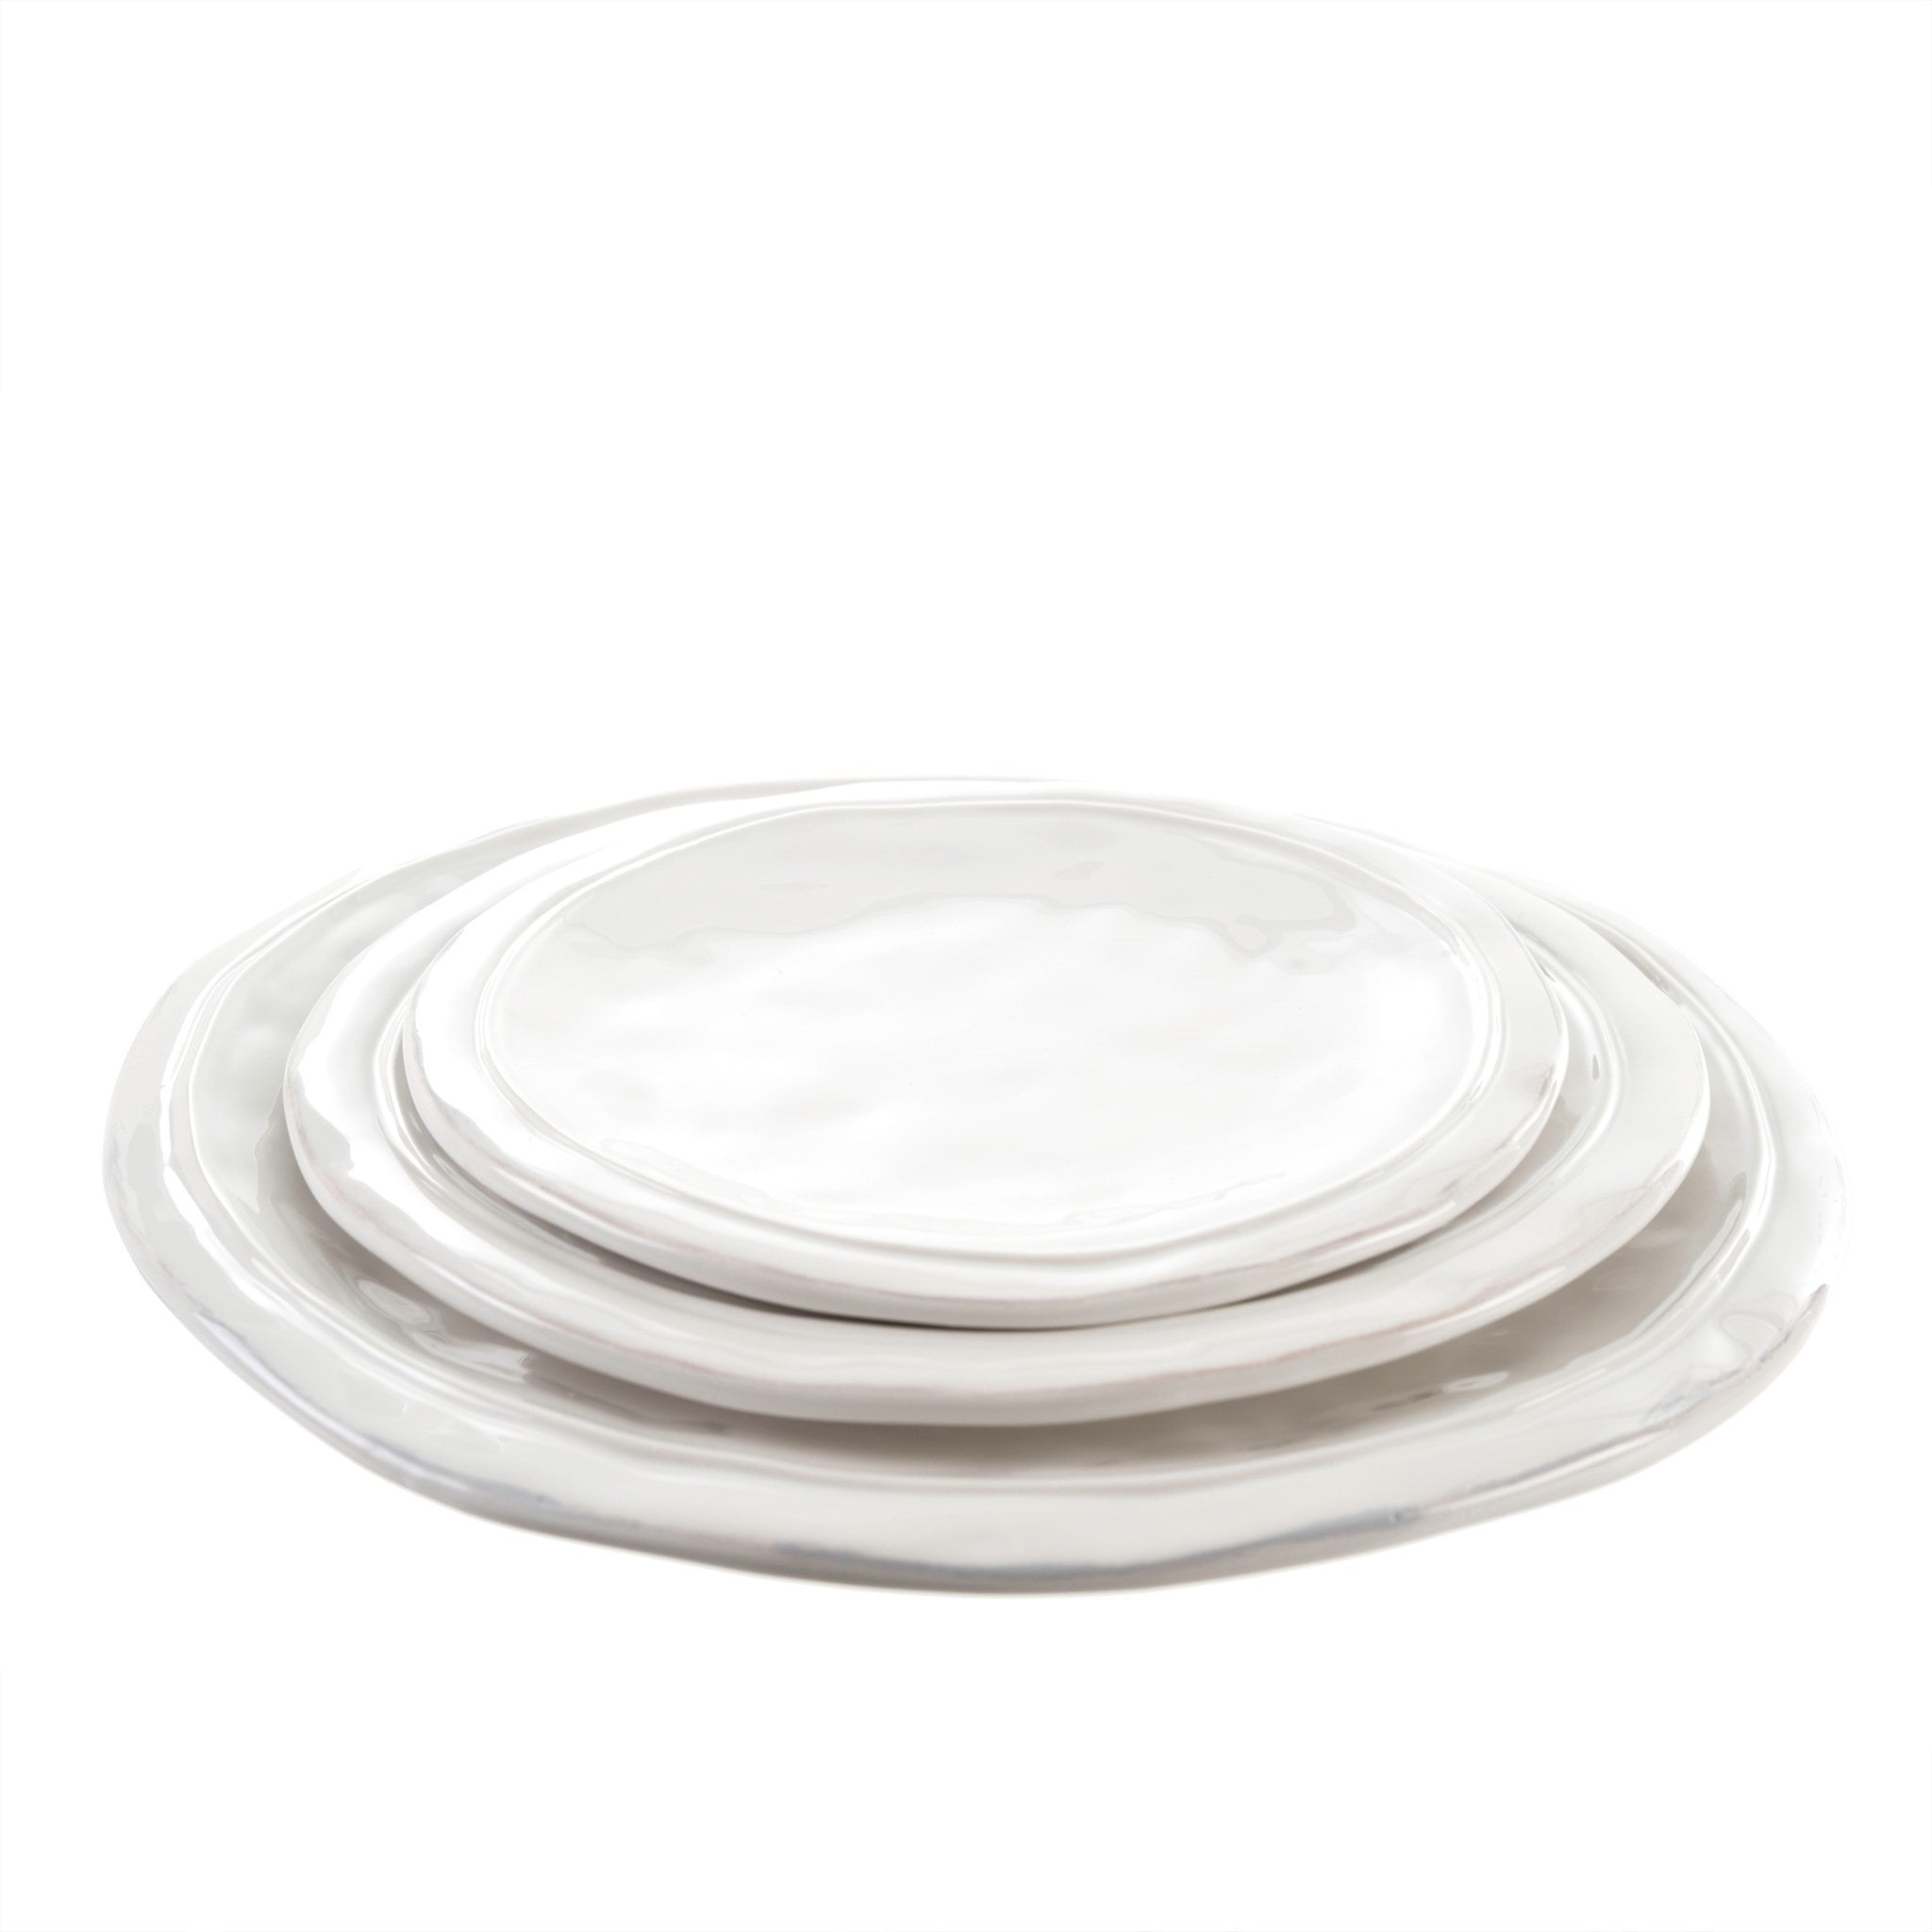 Ceres Dinner Plate